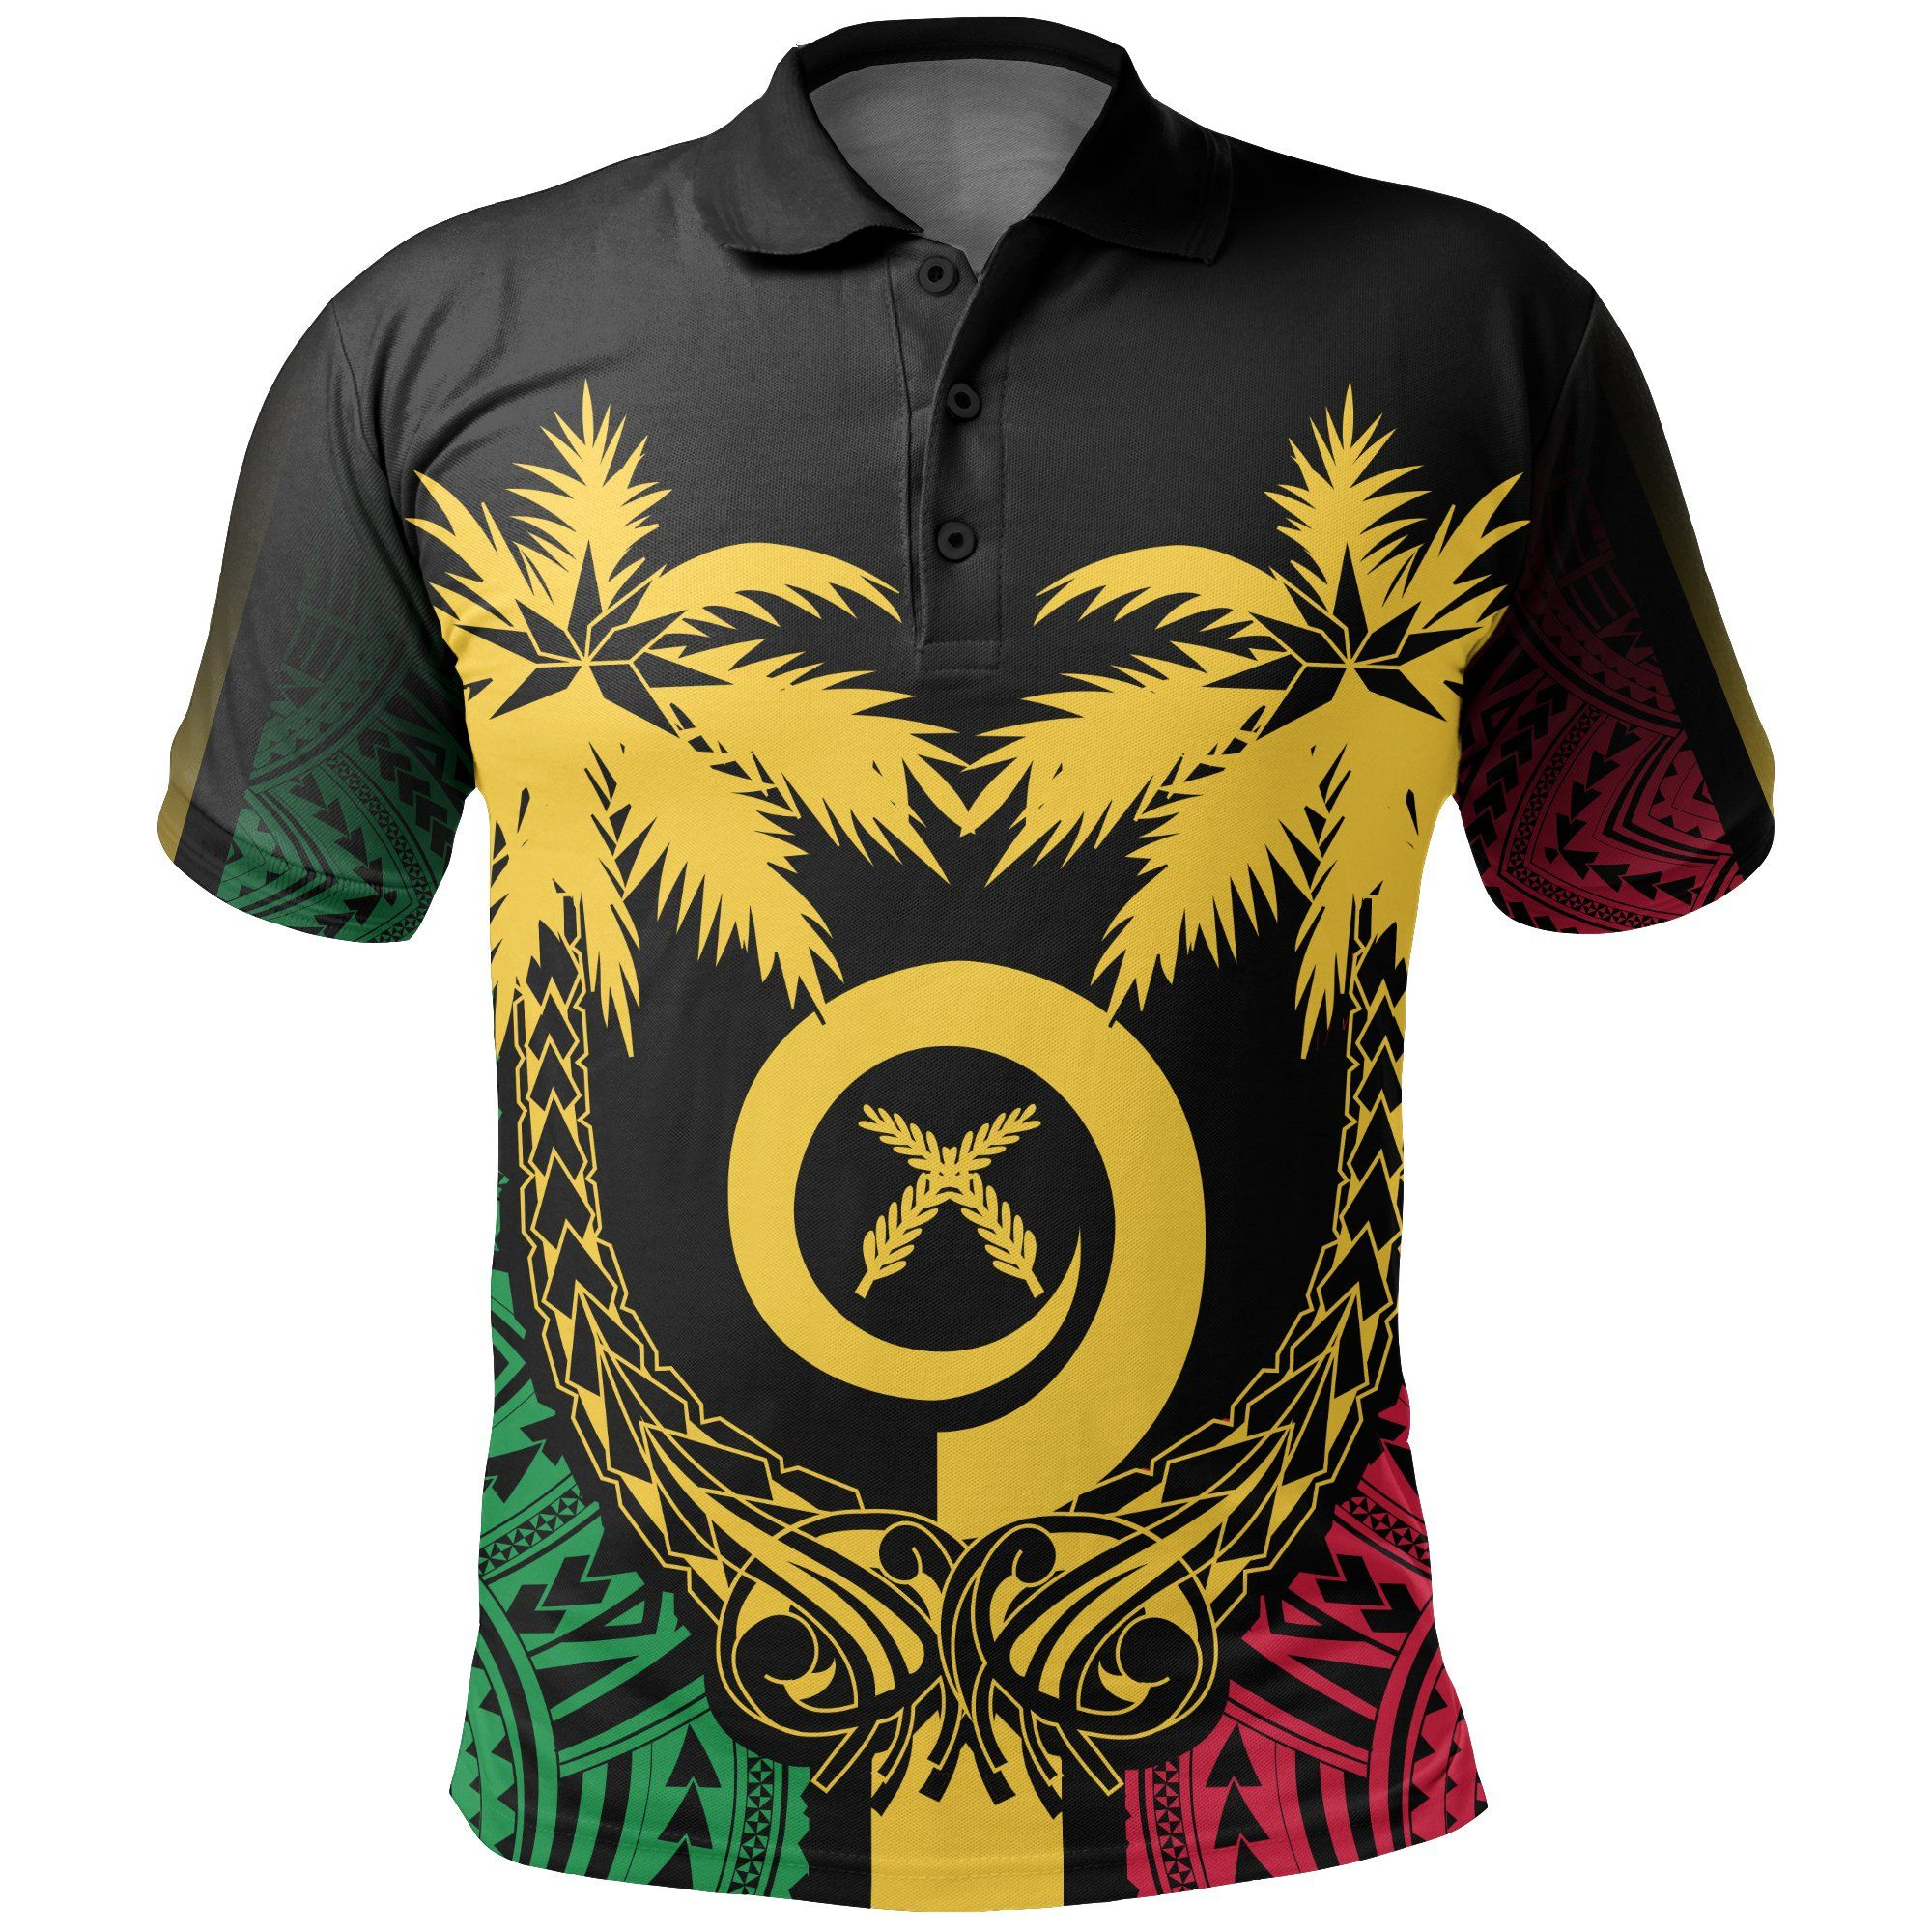 Vanuatu Coconut Polo Shirt A02 Turtle Tattoo Designs Mens Shoulder Tattoo Tribal Shoulder Tattoos